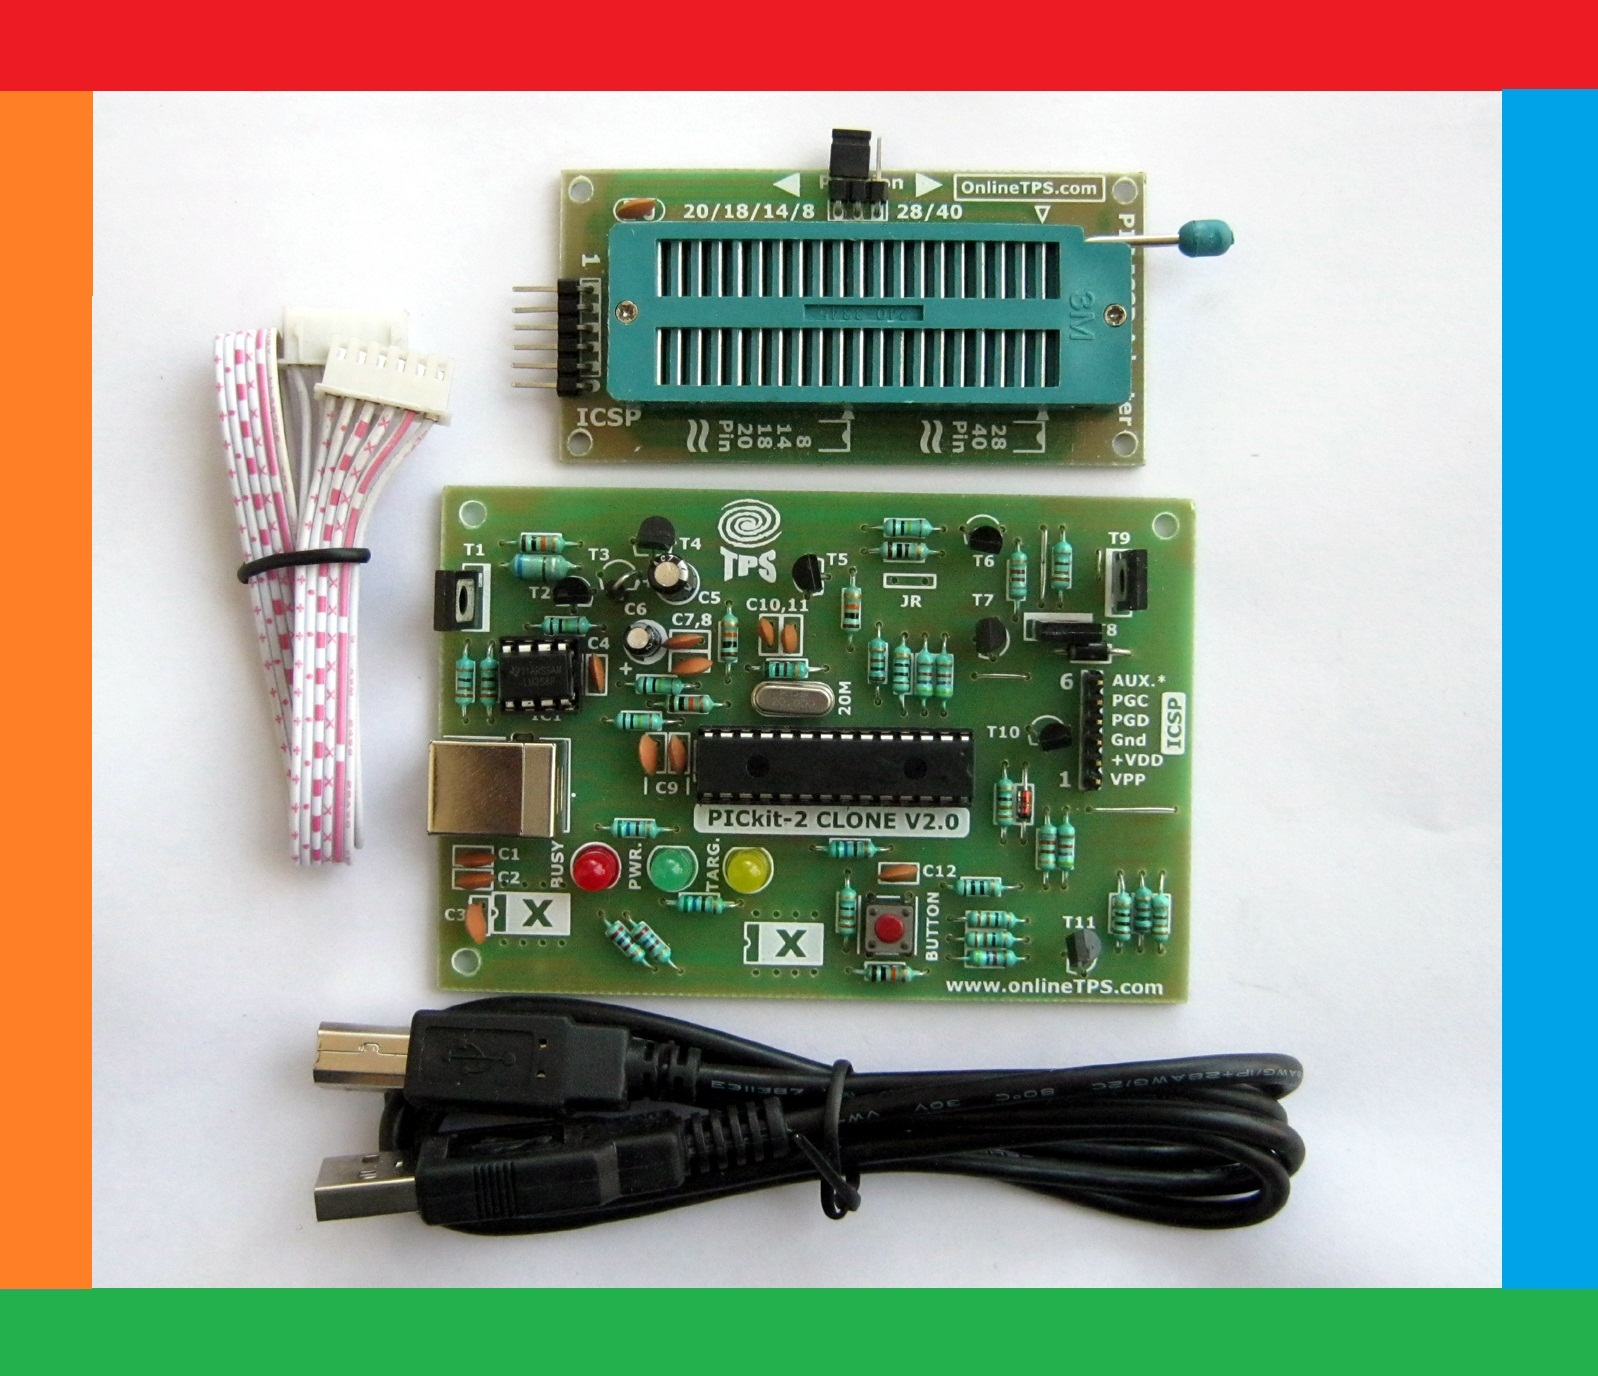 How To Make A Pic Programmer Pickit 2 Clone Original Microcontroller Purpic The Wearable Pickit2 Using Pic12f508